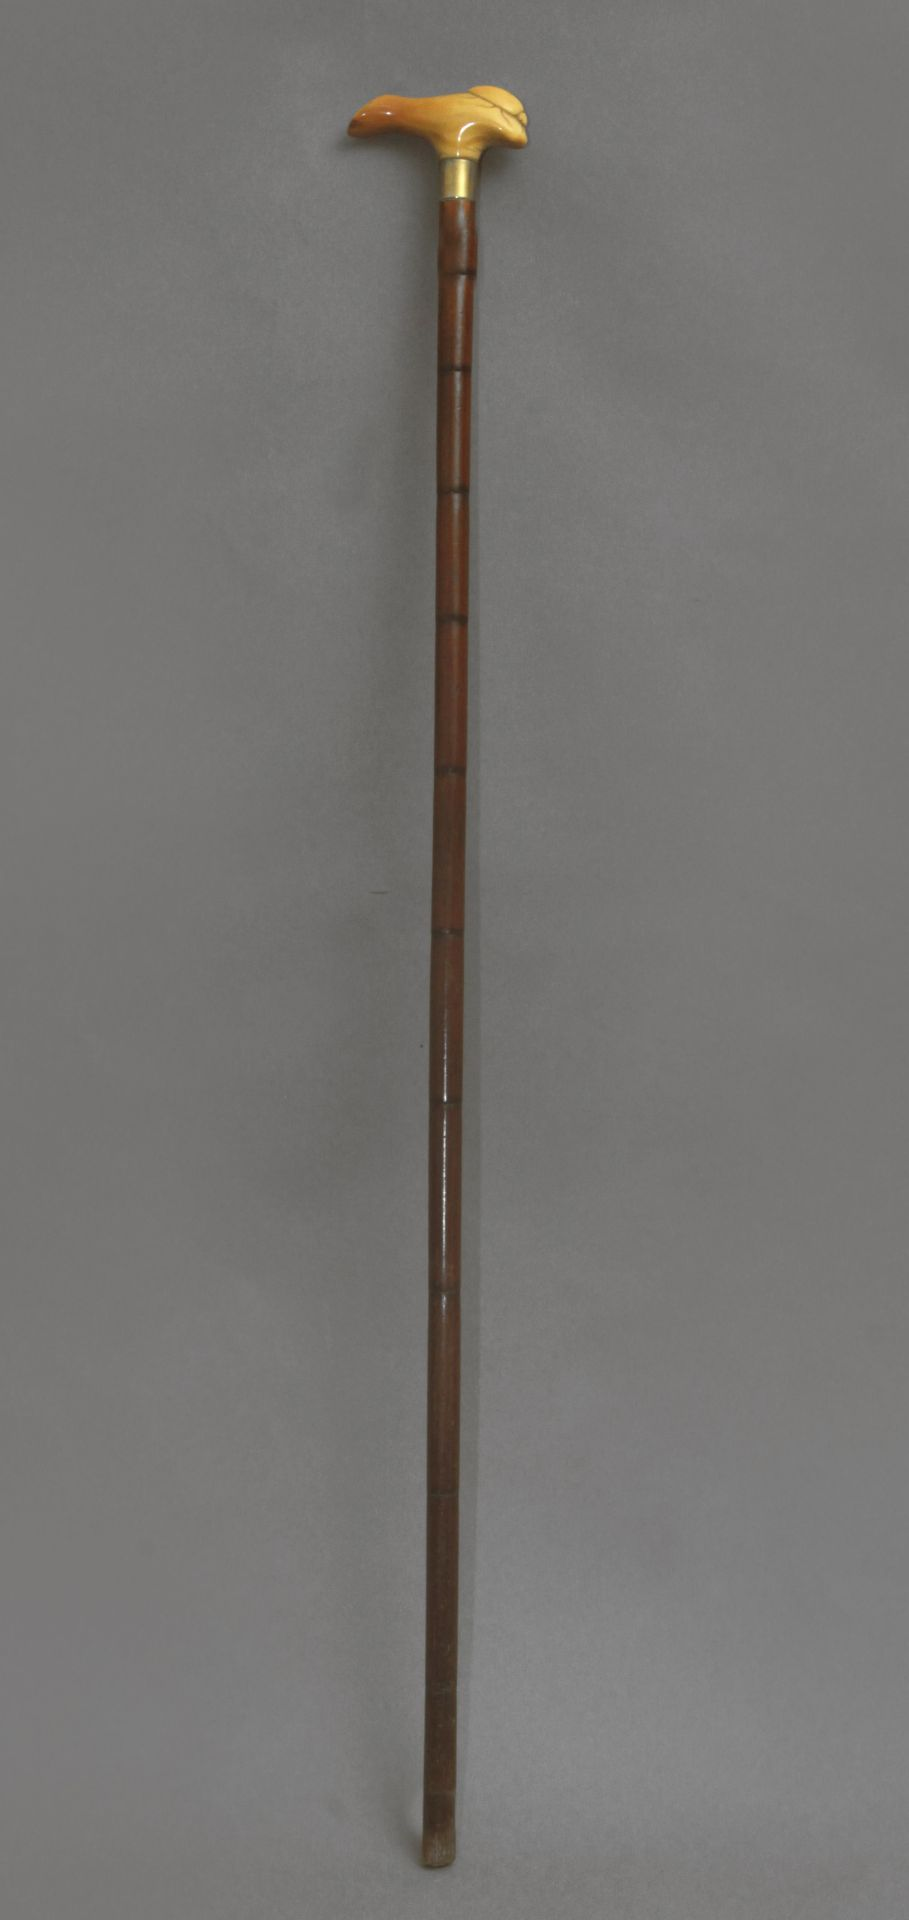 A 19th century probably Japanese walking stick - Bild 5 aus 9